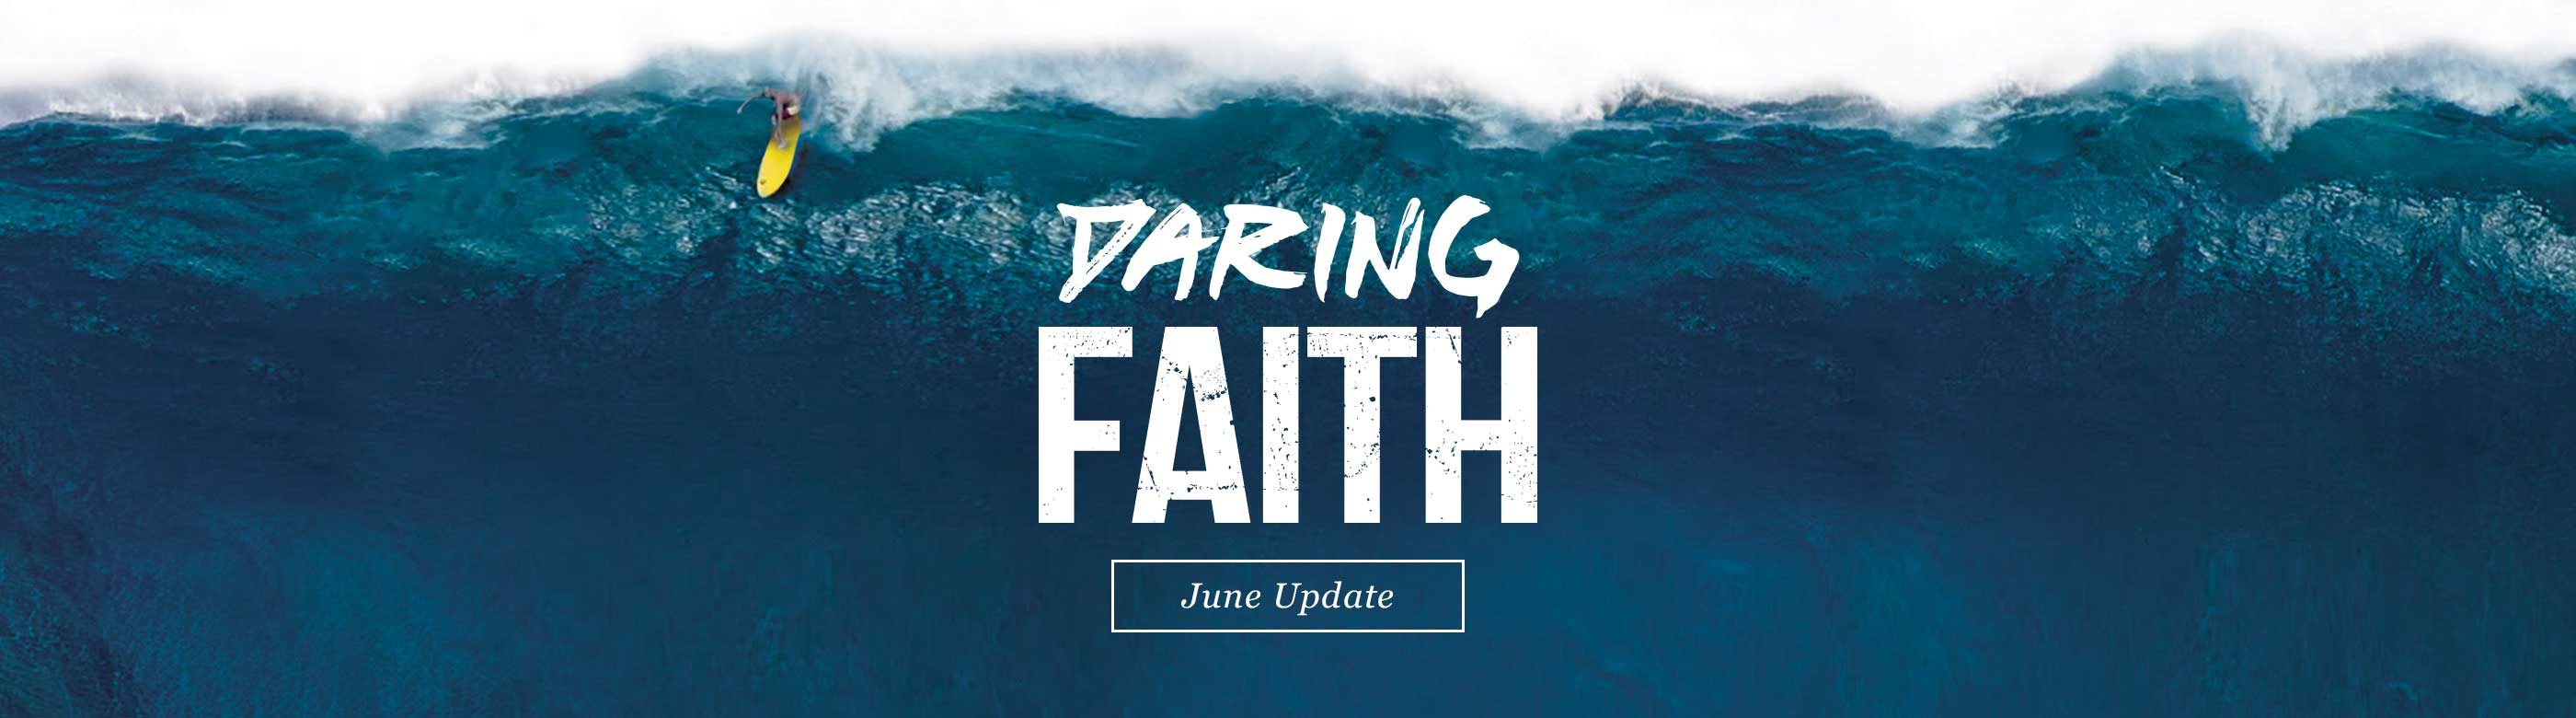 Daring Faith Giving Campaign